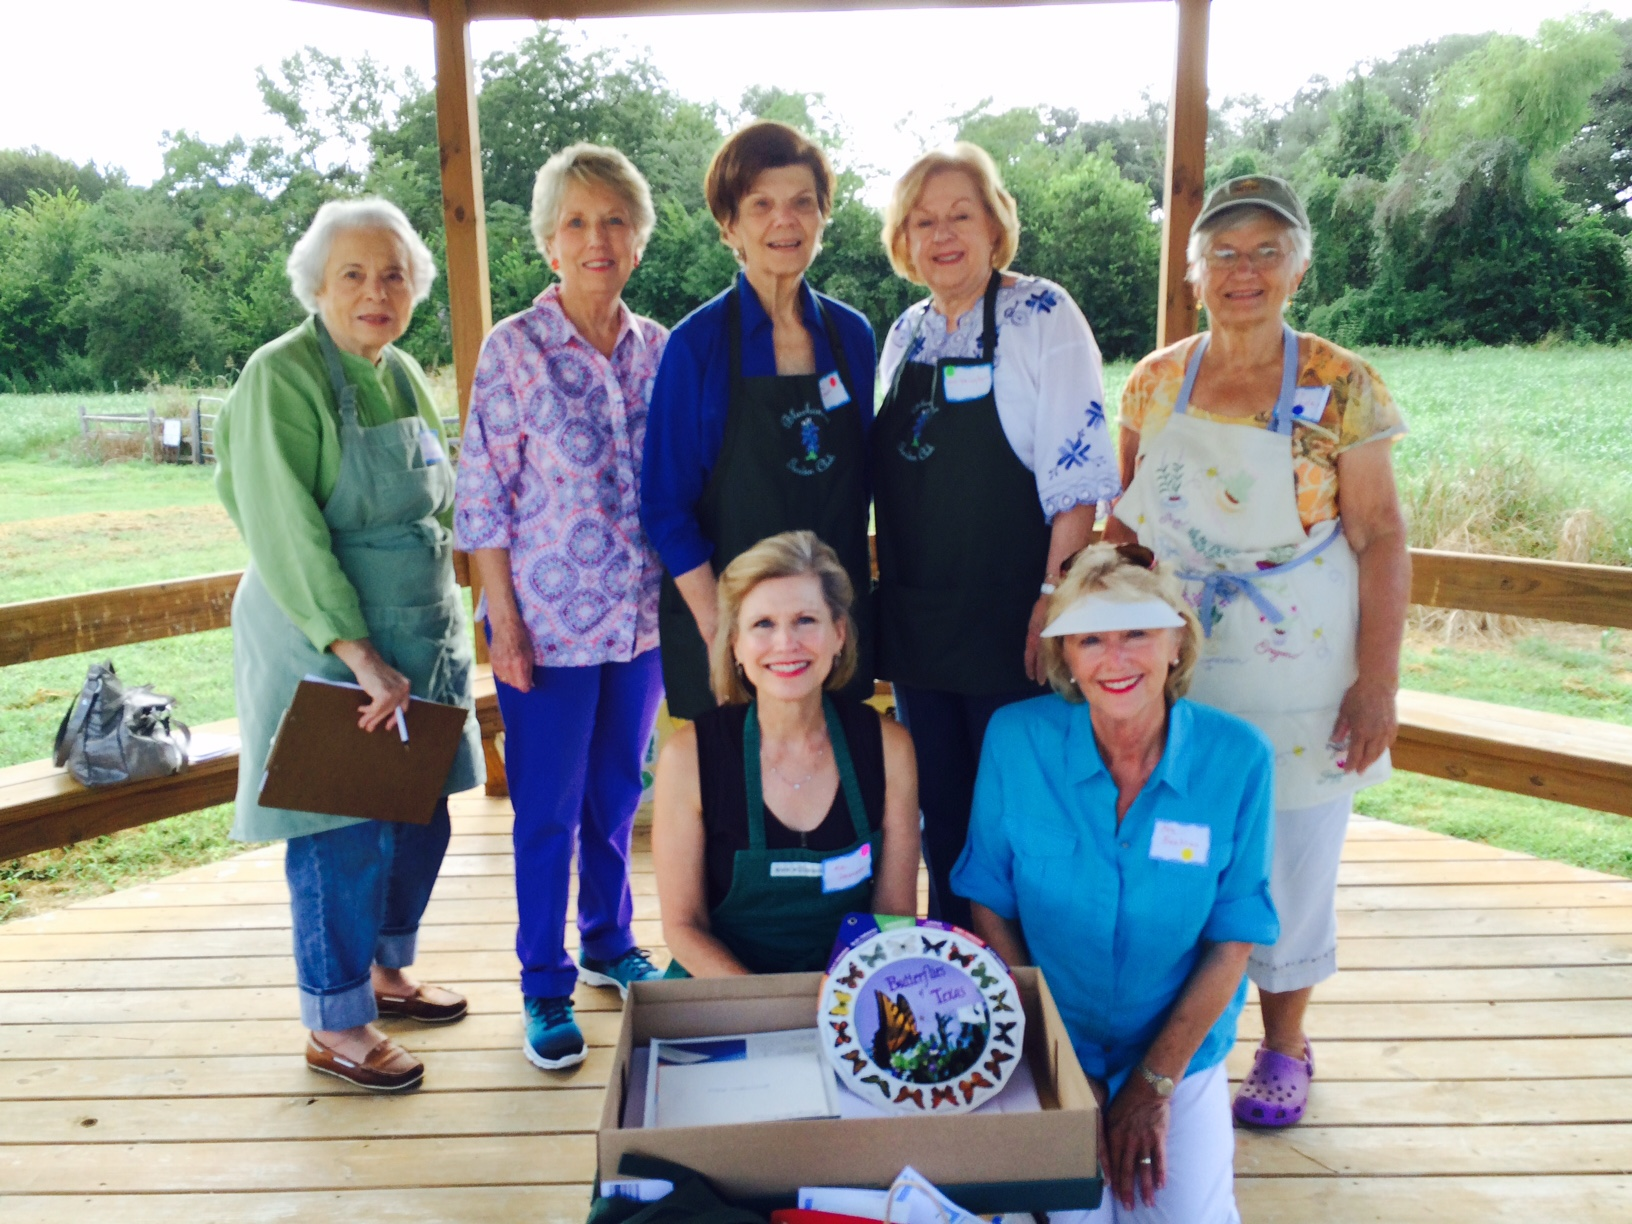 More September gardeners...Joy Kenjura, Sherry Barkman, Ann Lehmann, Betsy Striegler, Carolyn Sander, Debbie Urquhart. A special thank you to former garden club member, Jeri Baehren, who continues her faithful involvement with our Youth Gardeners!